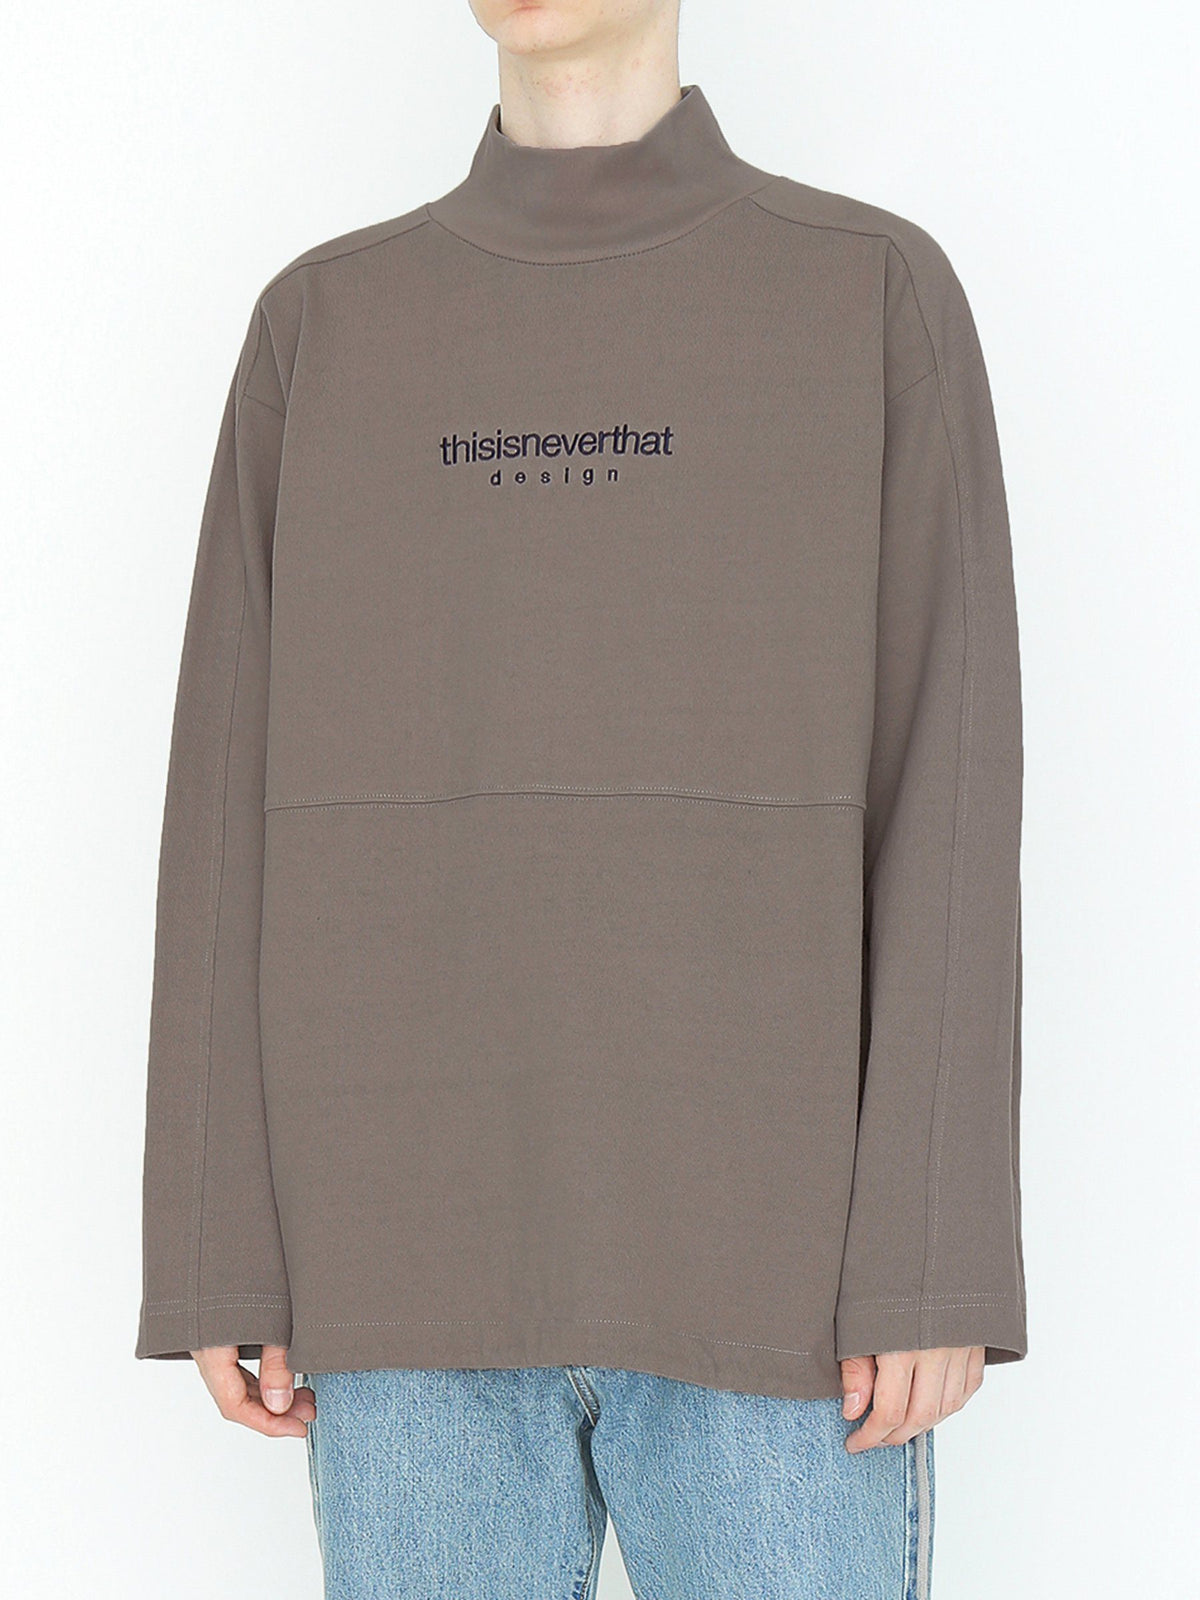 L-Logo Pullover - thisisneverthat